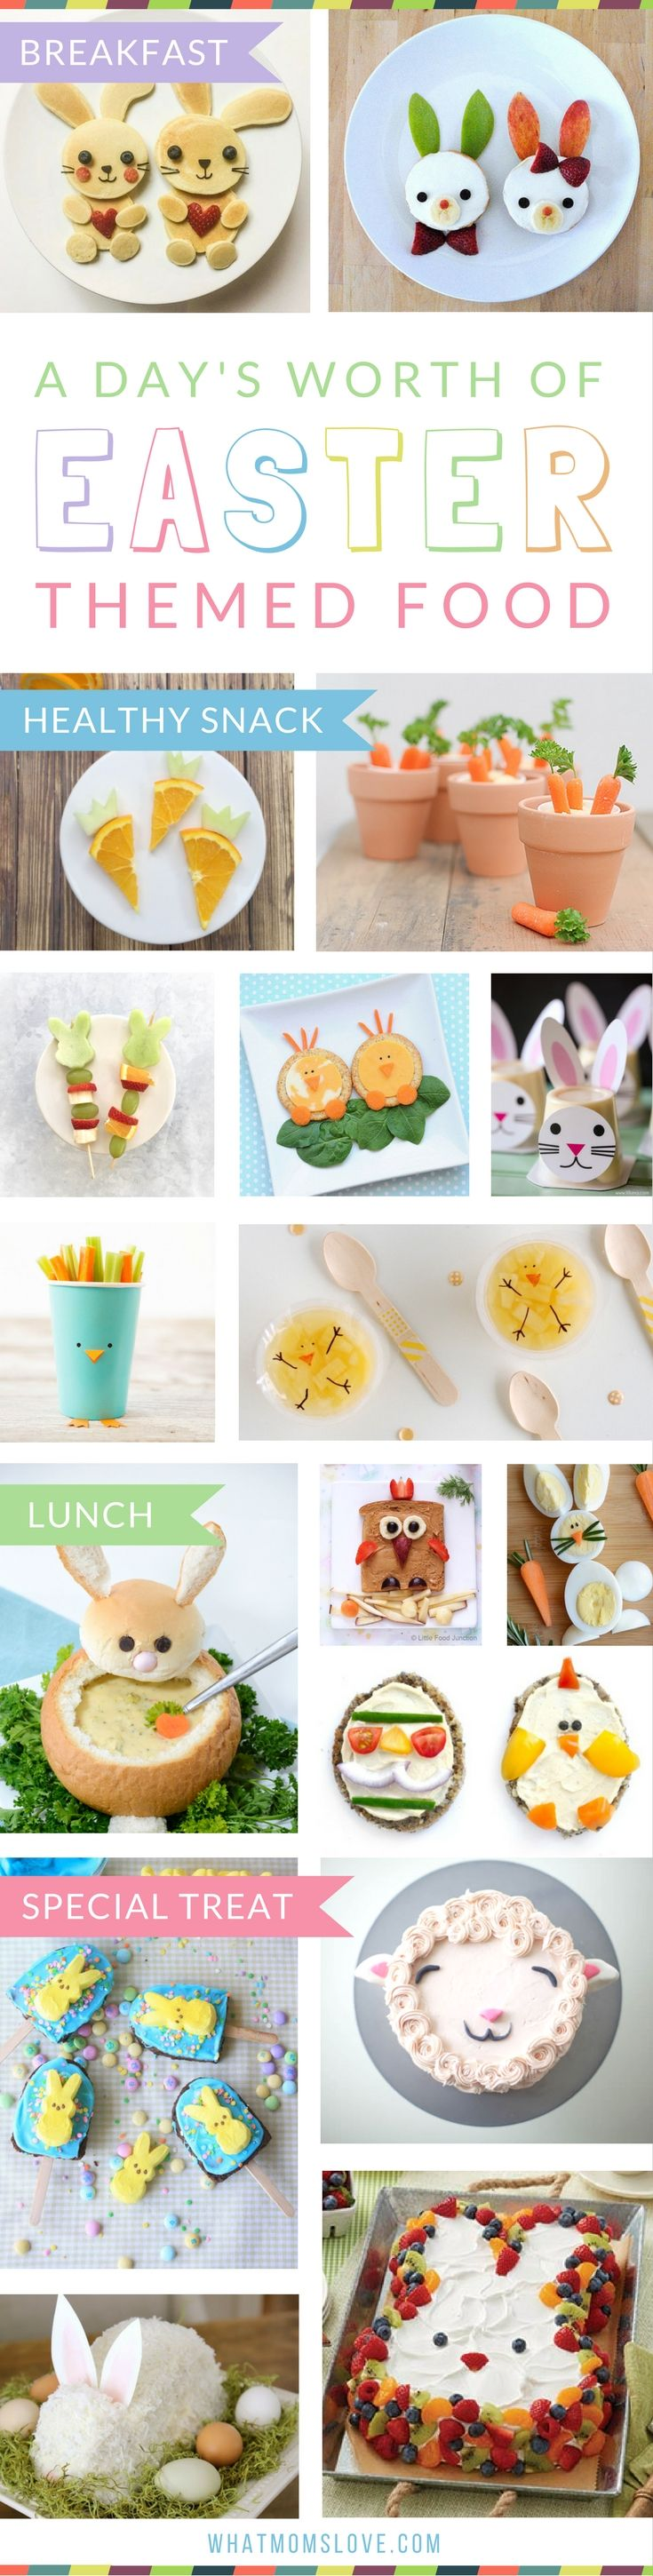 17 Best Ideas About Easter Food On Pinterest Traditional